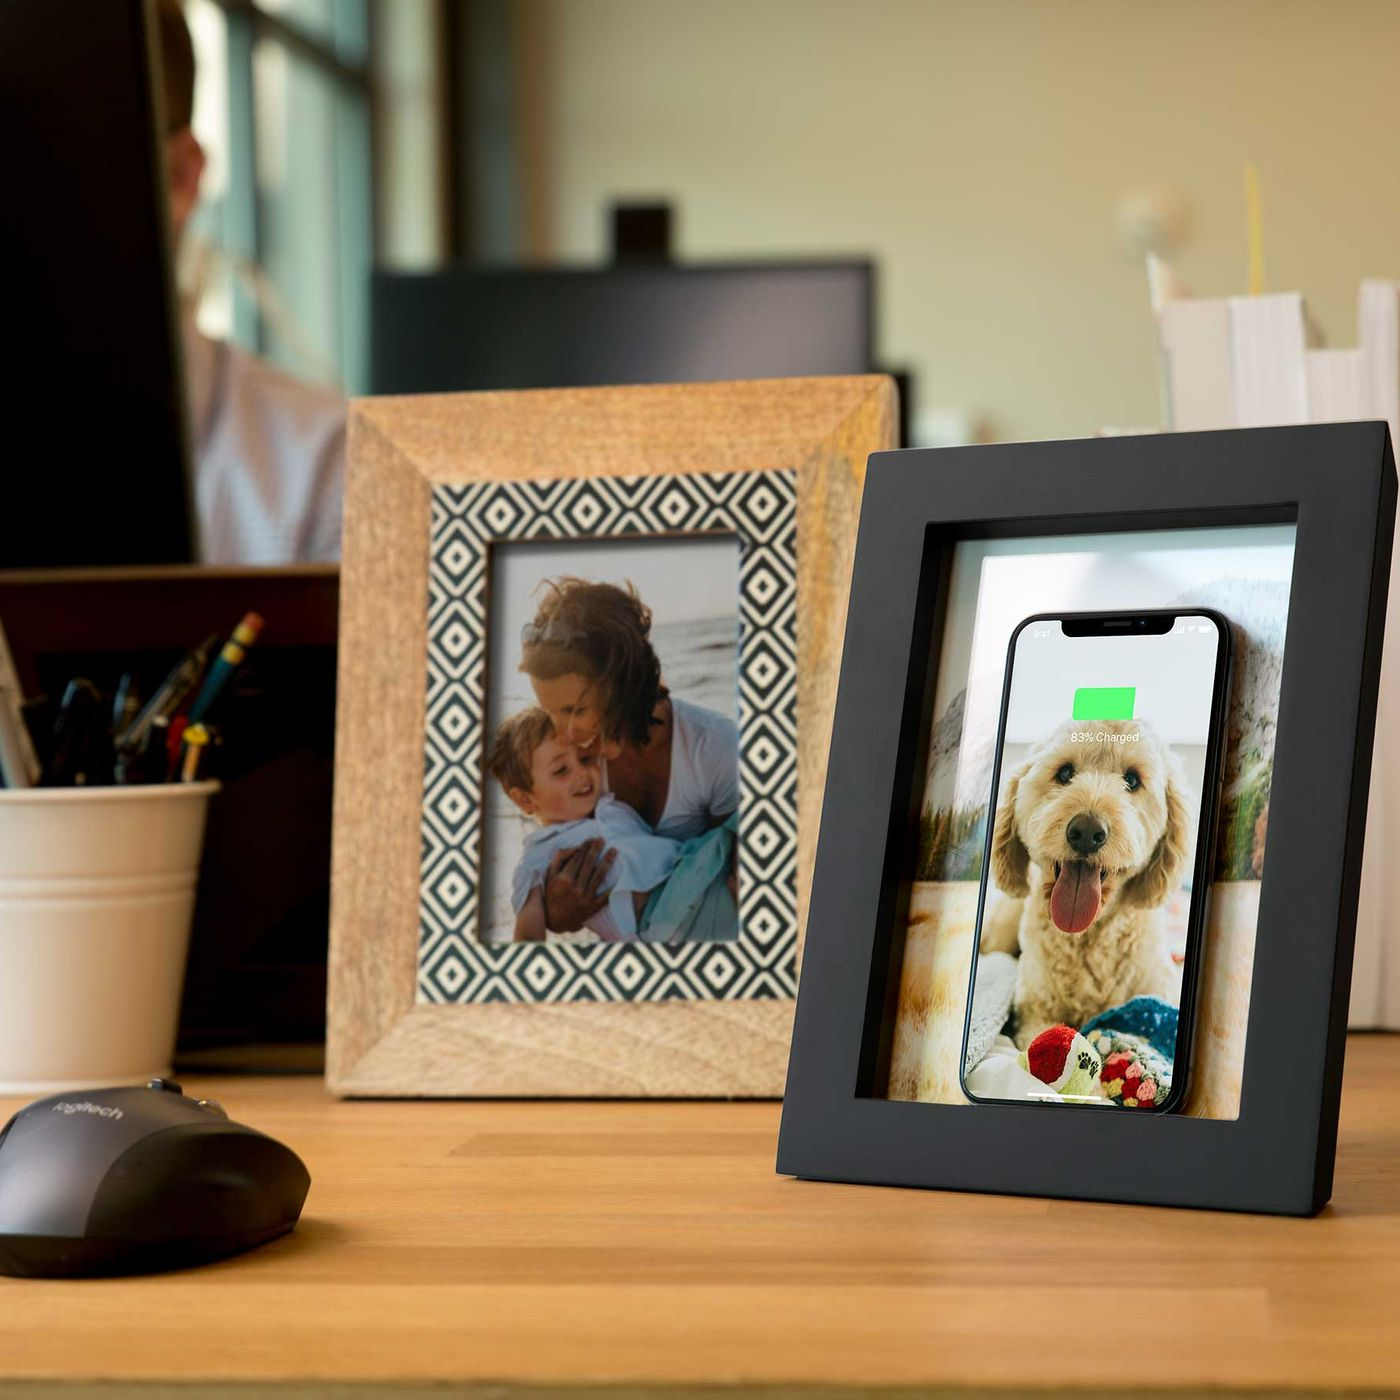 theverge.com - Chaim Gartenberg - Twelve South's PowerPic hides a wireless charger in a wooden picture frame